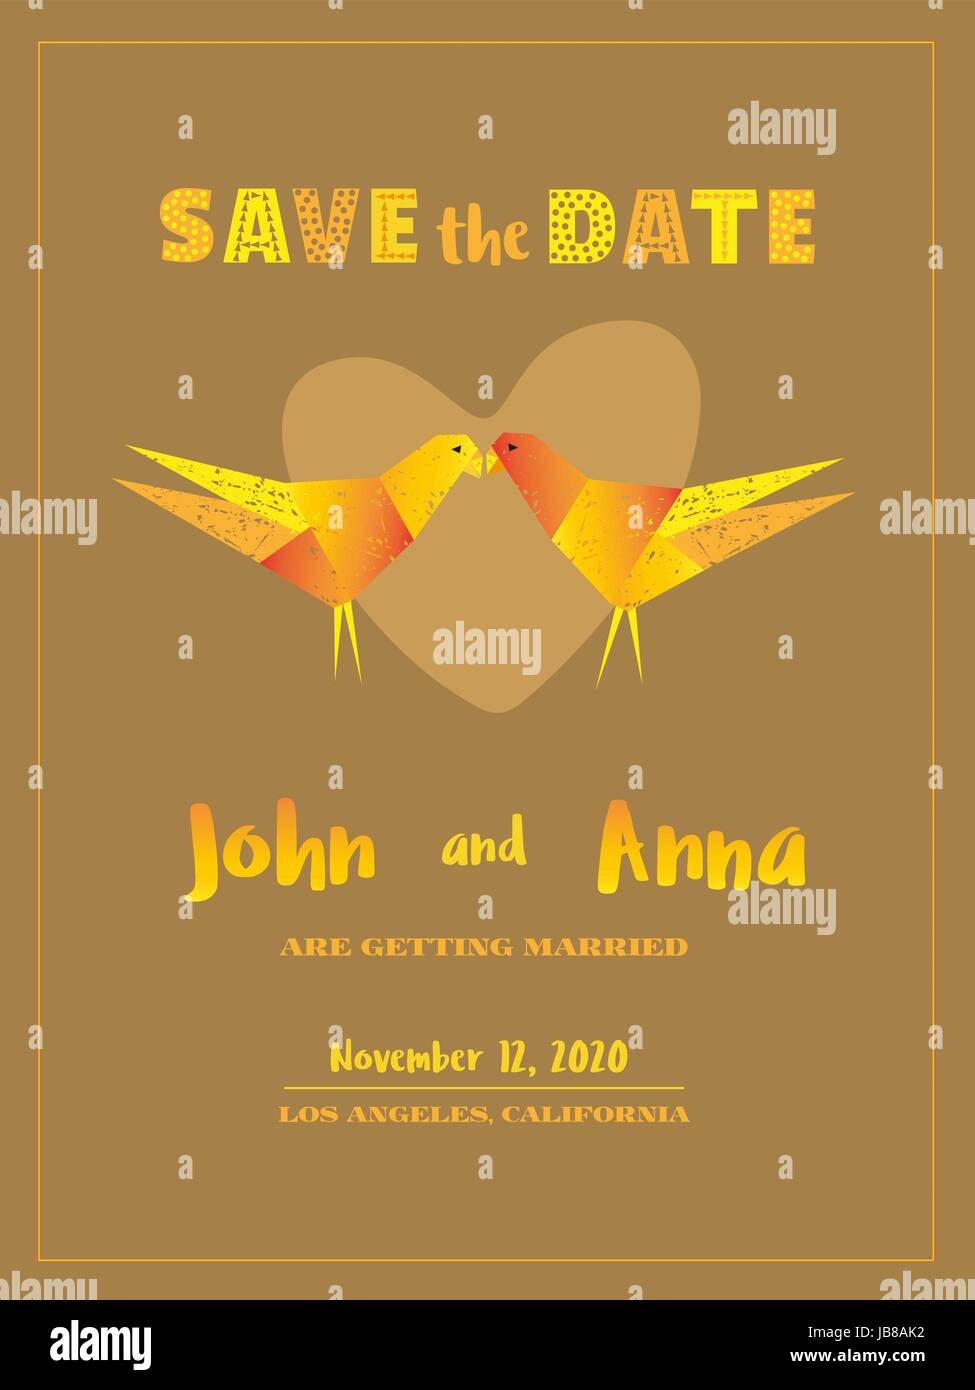 Save the date card template marriage invitation card with custom save the date card template marriage invitation card with custom sign hand drawn fancy style colorful couple of birds lovers wedding day announcem stopboris Choice Image